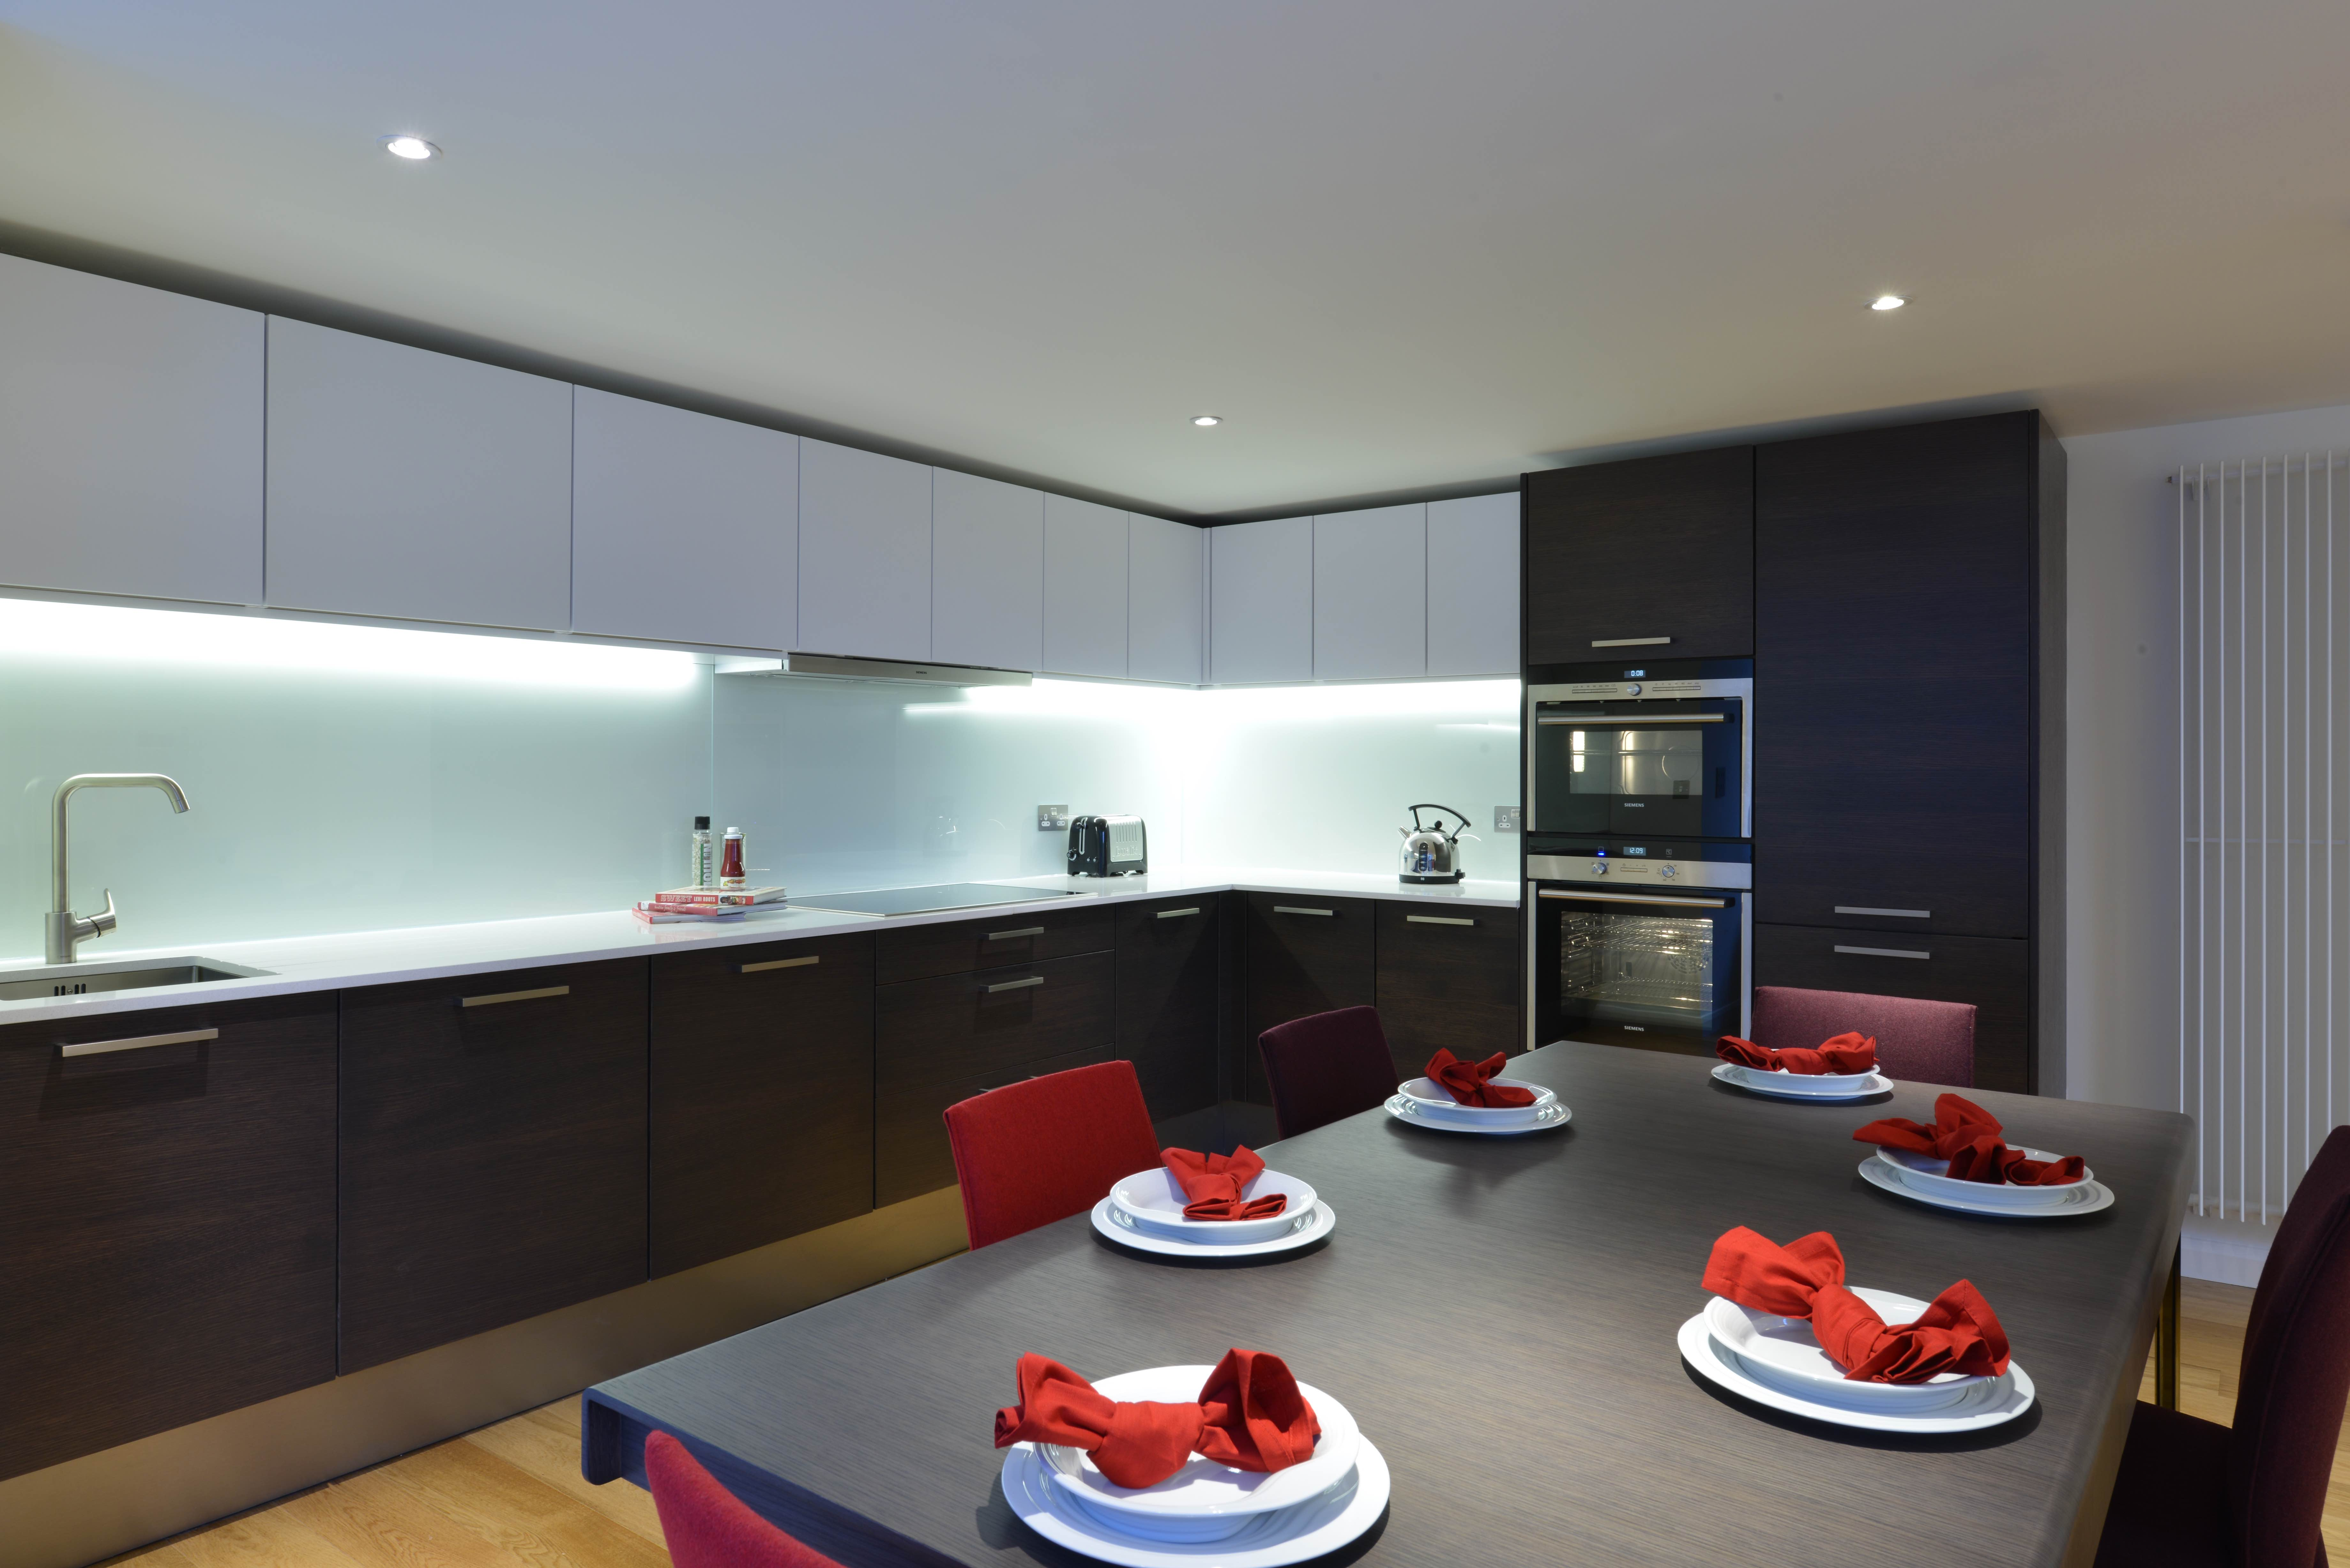 Unusual yet beautiful ways to decorate your kitchen - Q360 Blog ...